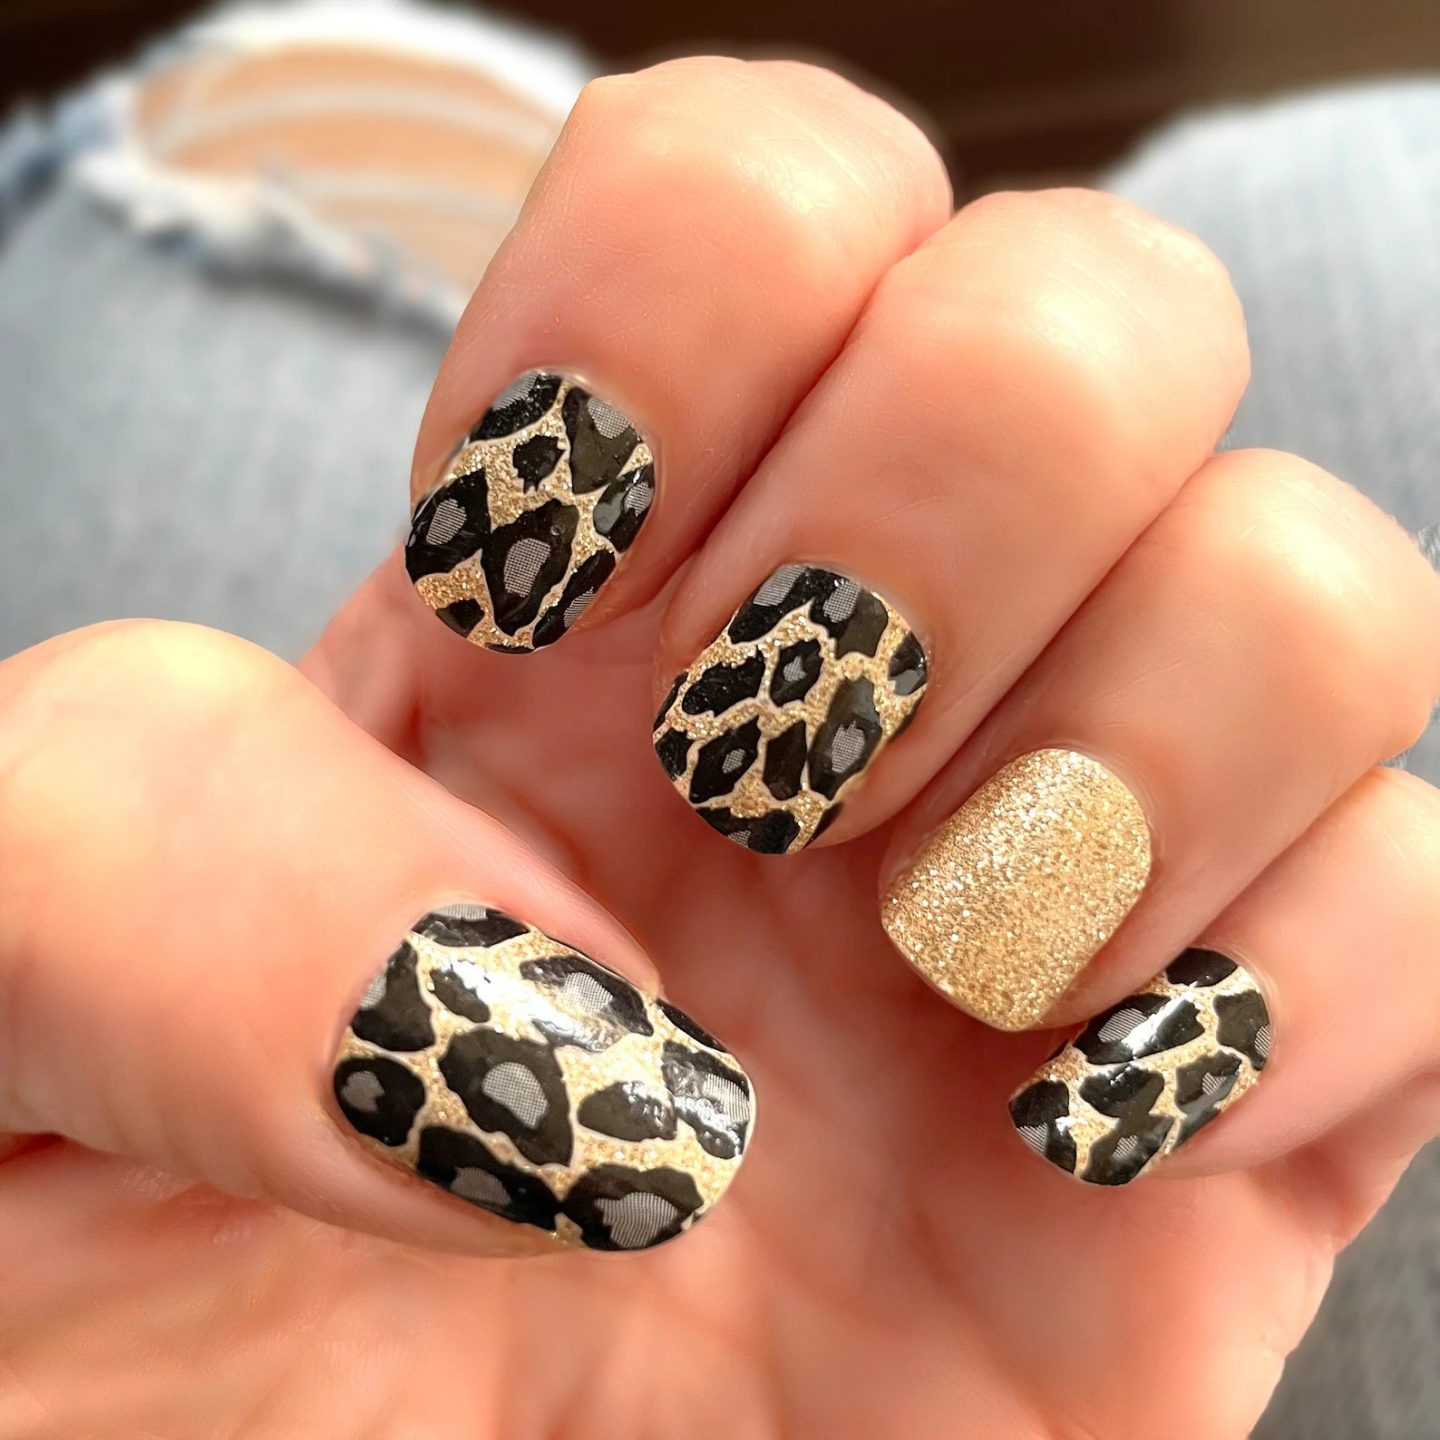 Short black and gold cheetah nails with glitter